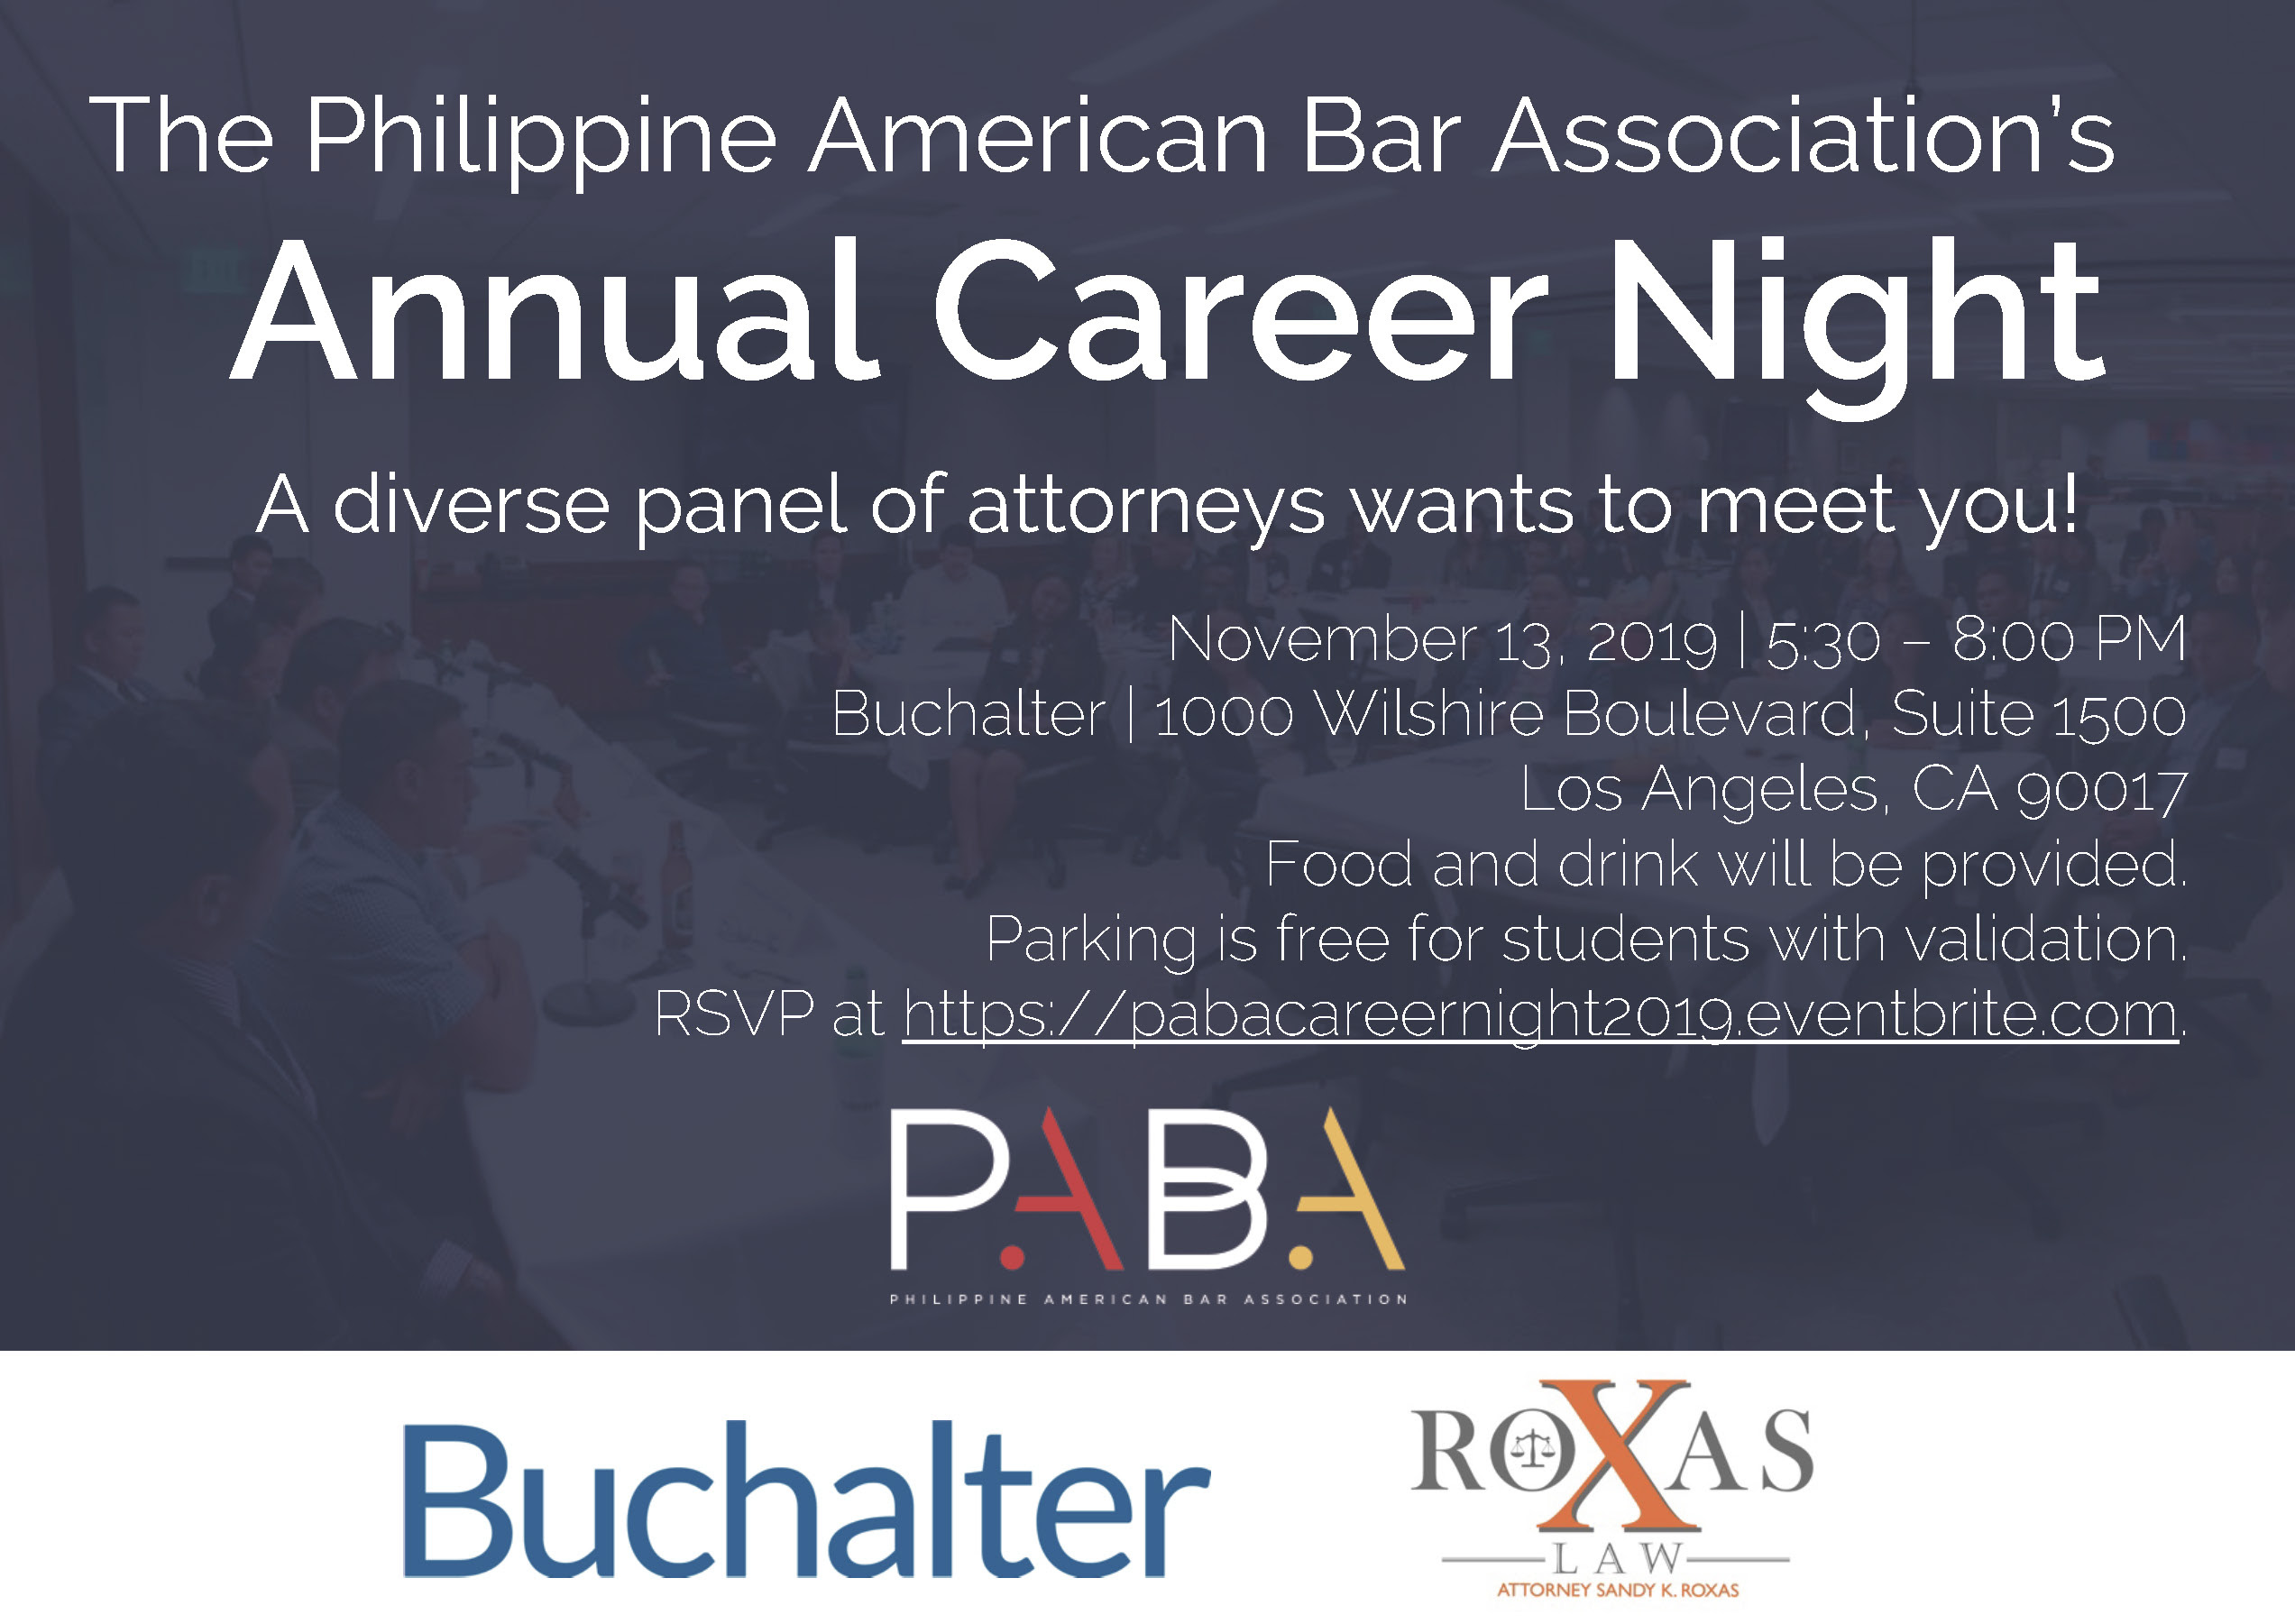 Nov 13 – Annual Career Night